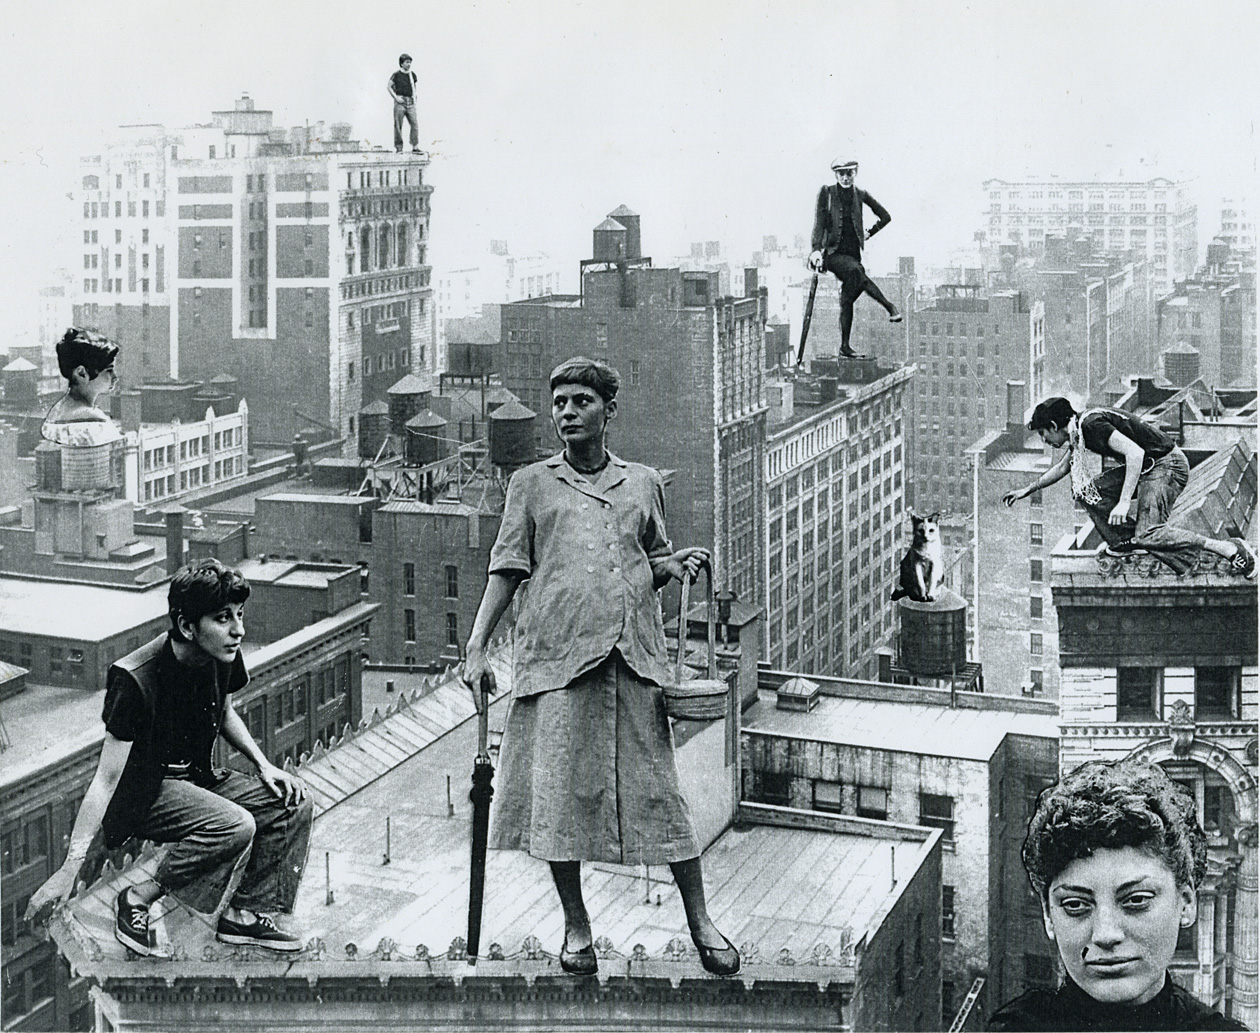 "Rudy Burckhardt photomontage ""Over the Roofs of Chelsea"" created in 1949 for the exhibition with Helen DeMott, Lucia Vernarelli and Edith Schloss Burckhardt at the Pyramid Gallery in New York City. The three close friends were called ""Chelsea Girls"" by Edwin Denby. Foreground: DeMott, Schloss (pregnant with her son Jacob Burckhardt), and Vernarelli. From the Edith Schloss Burckhardt Archive."